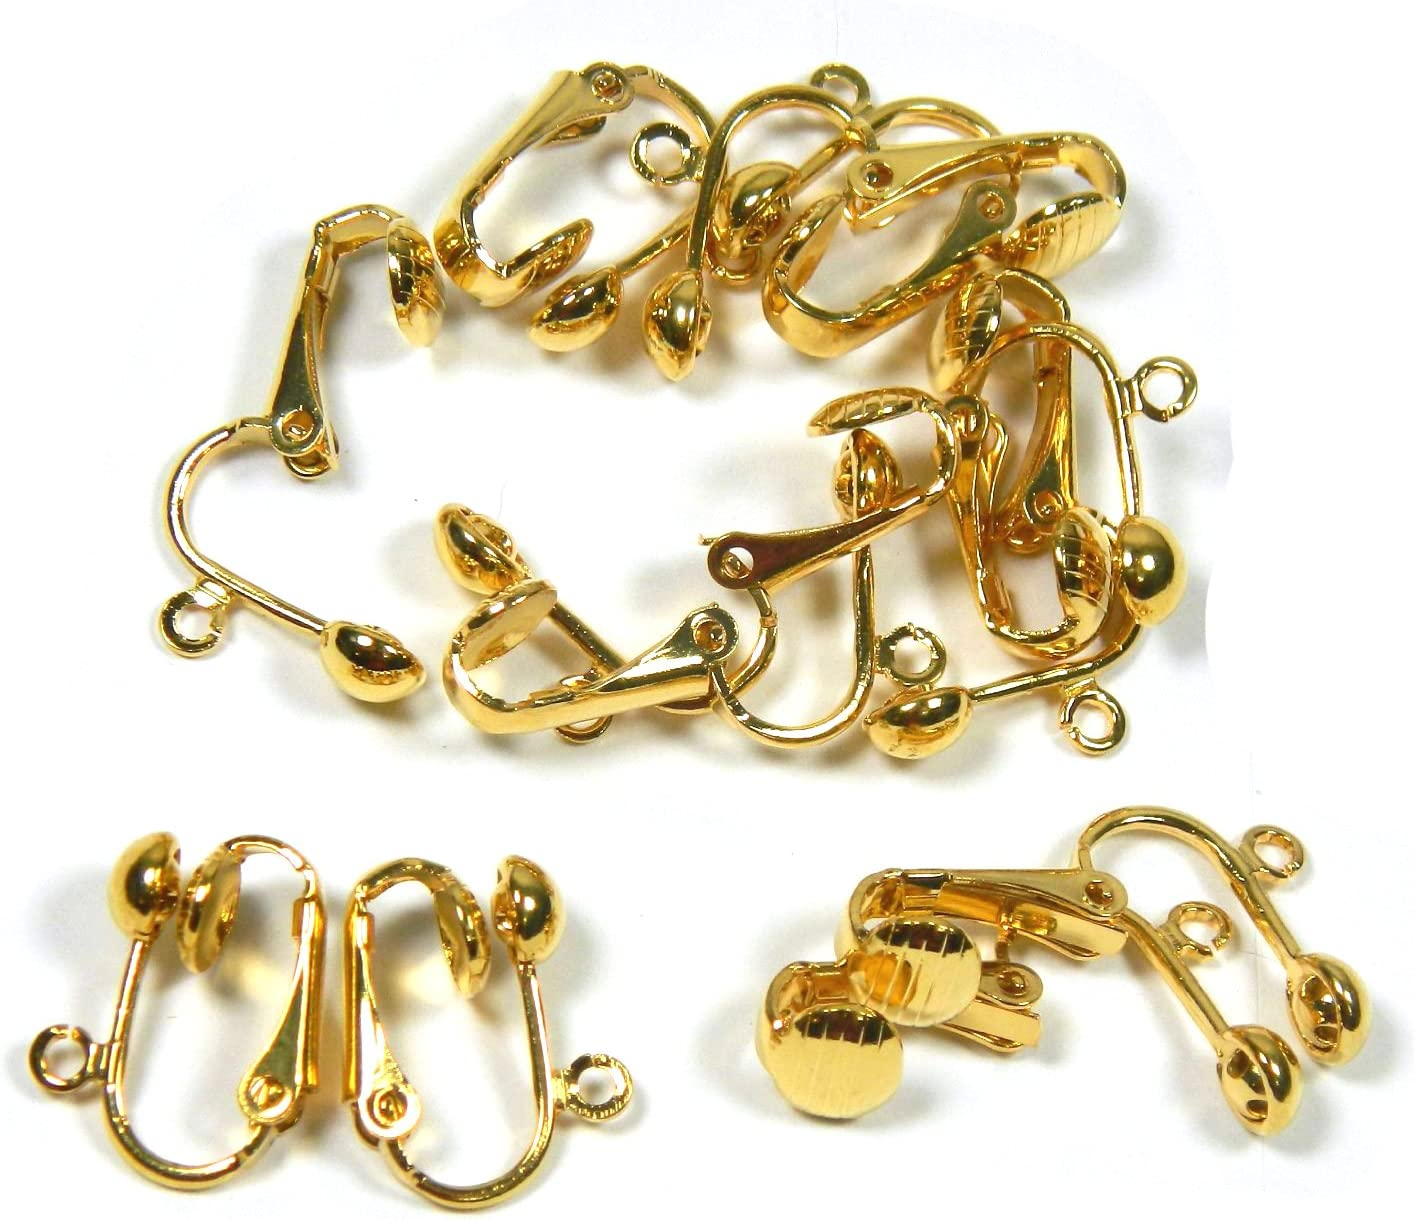 5 pairs of medium gold plated findings for jewellery making clip on earrings